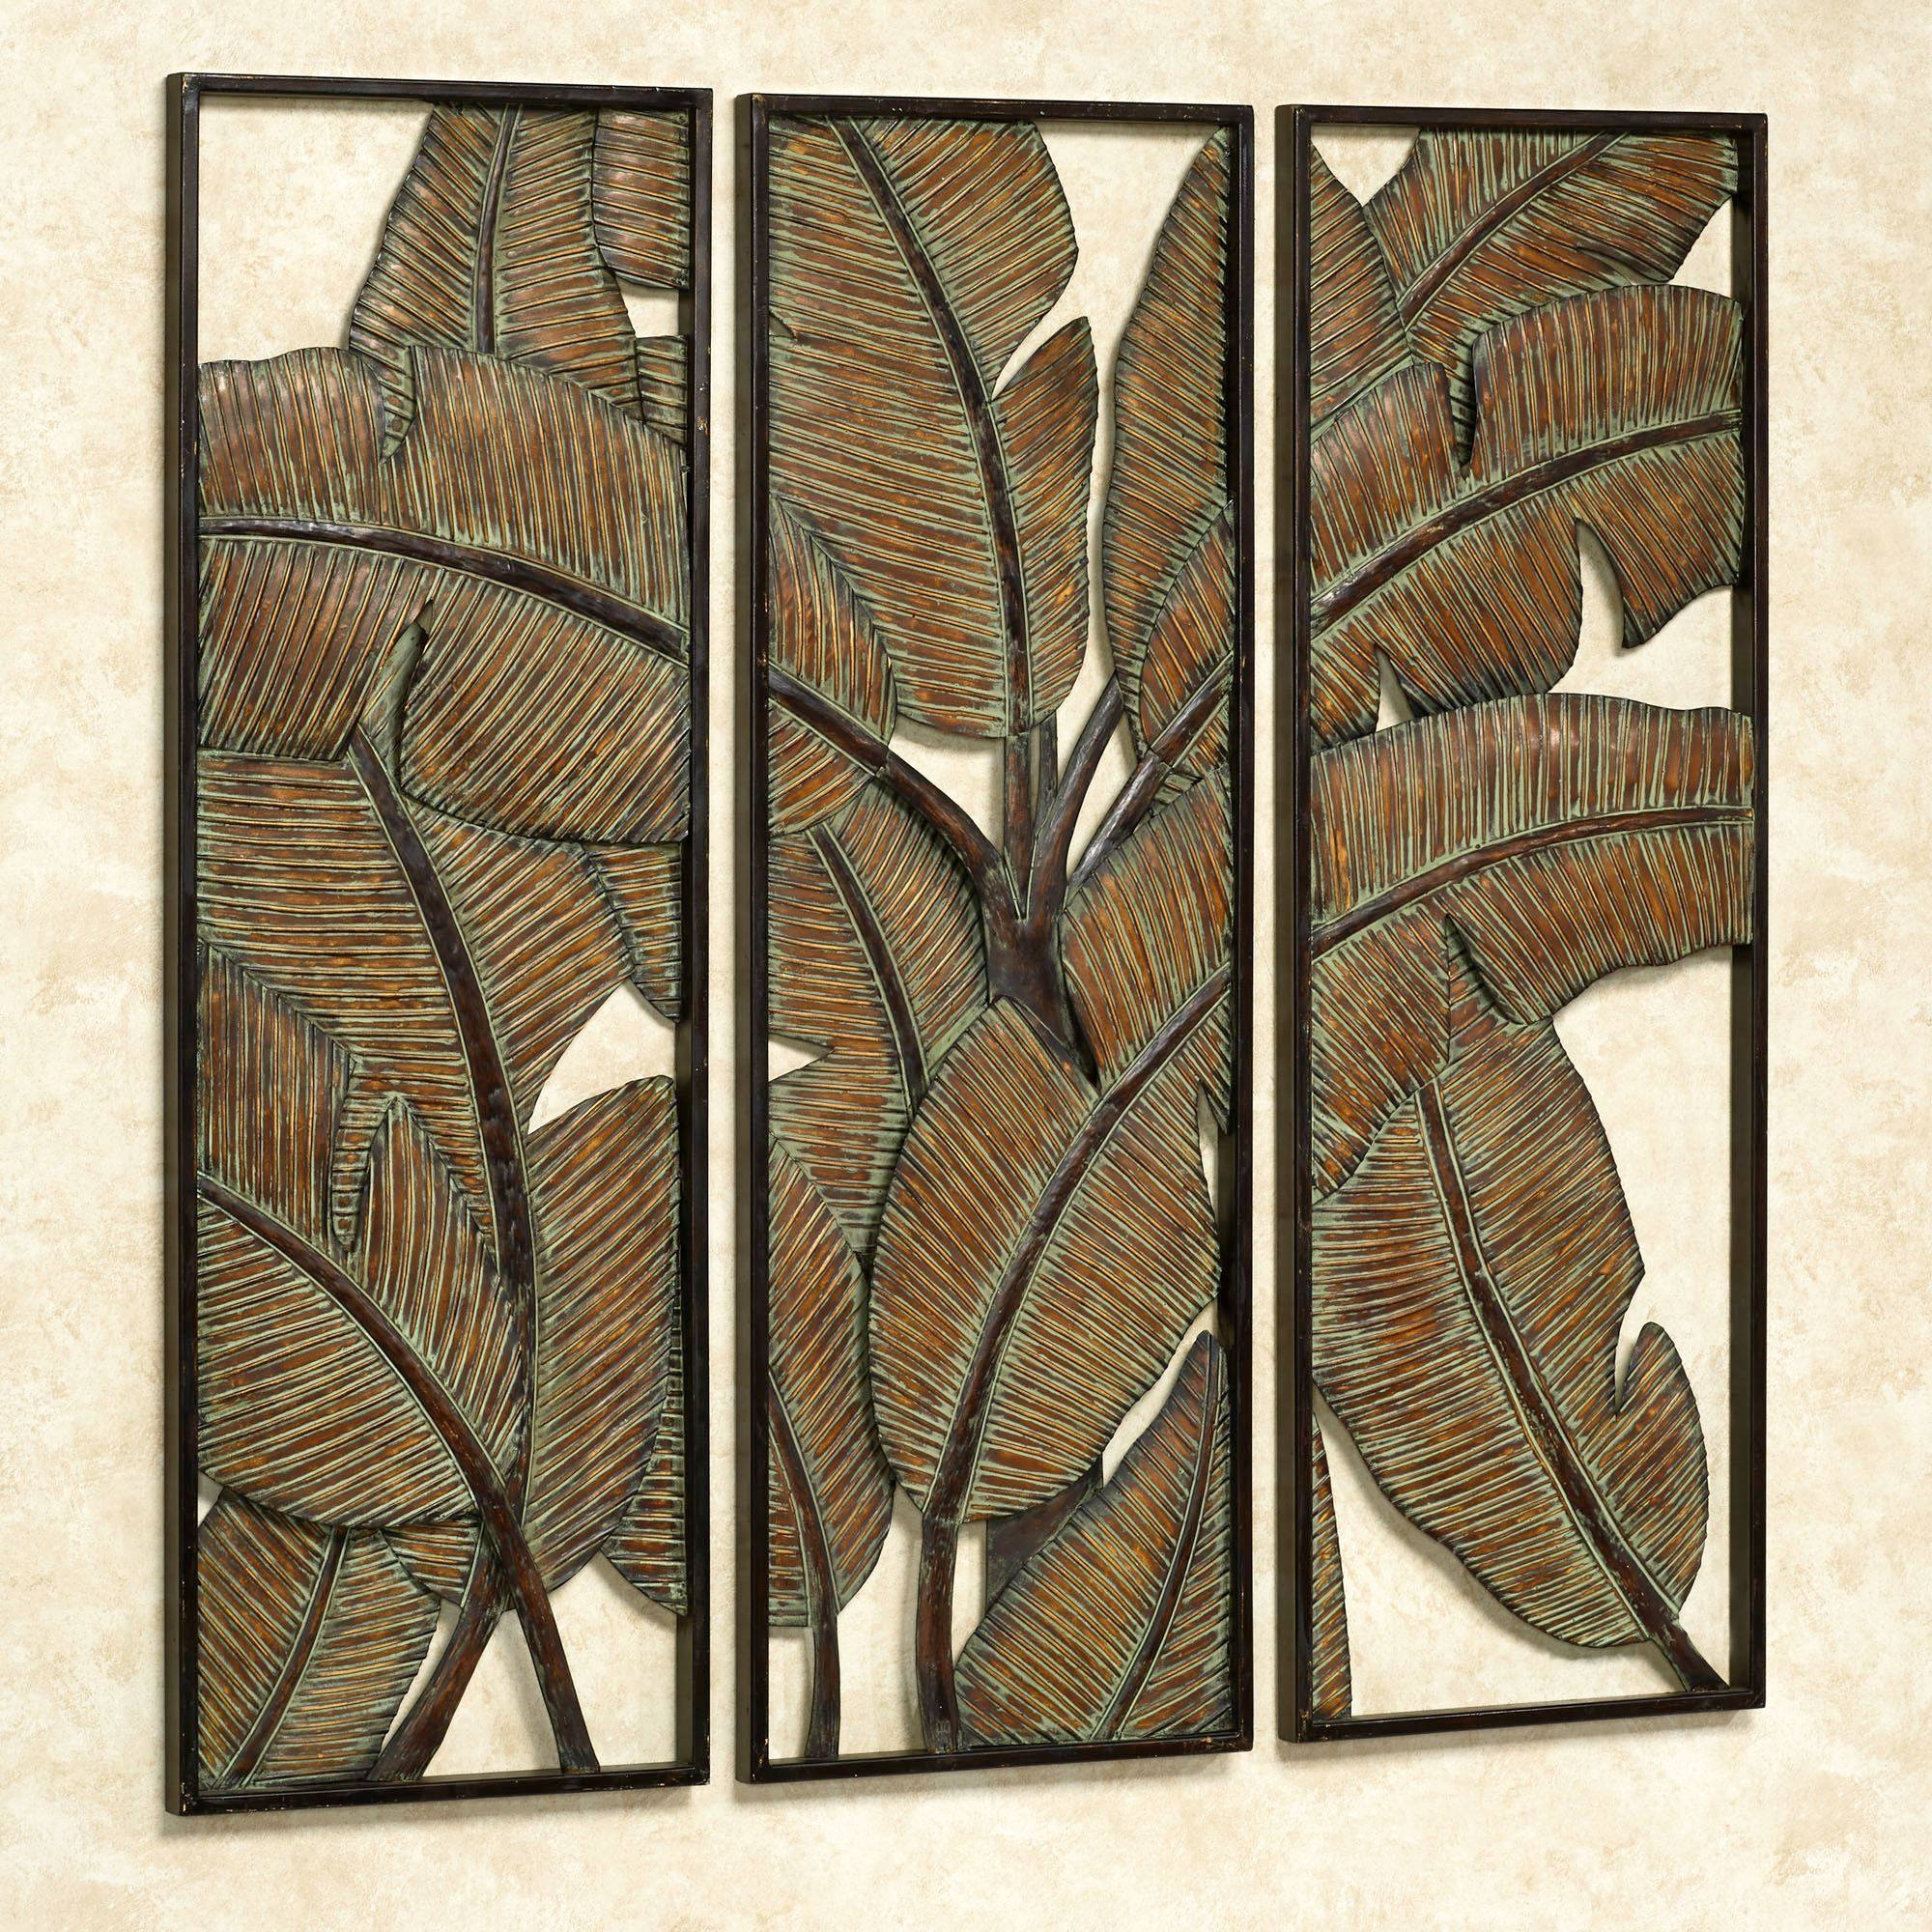 Trendy Metal Wall Art Decor 3D Mural Kaylani Tropical Leaf Metal Regarding Most Recently Released Metal Wall Art Decor 3D Mural (View 3 of 20)